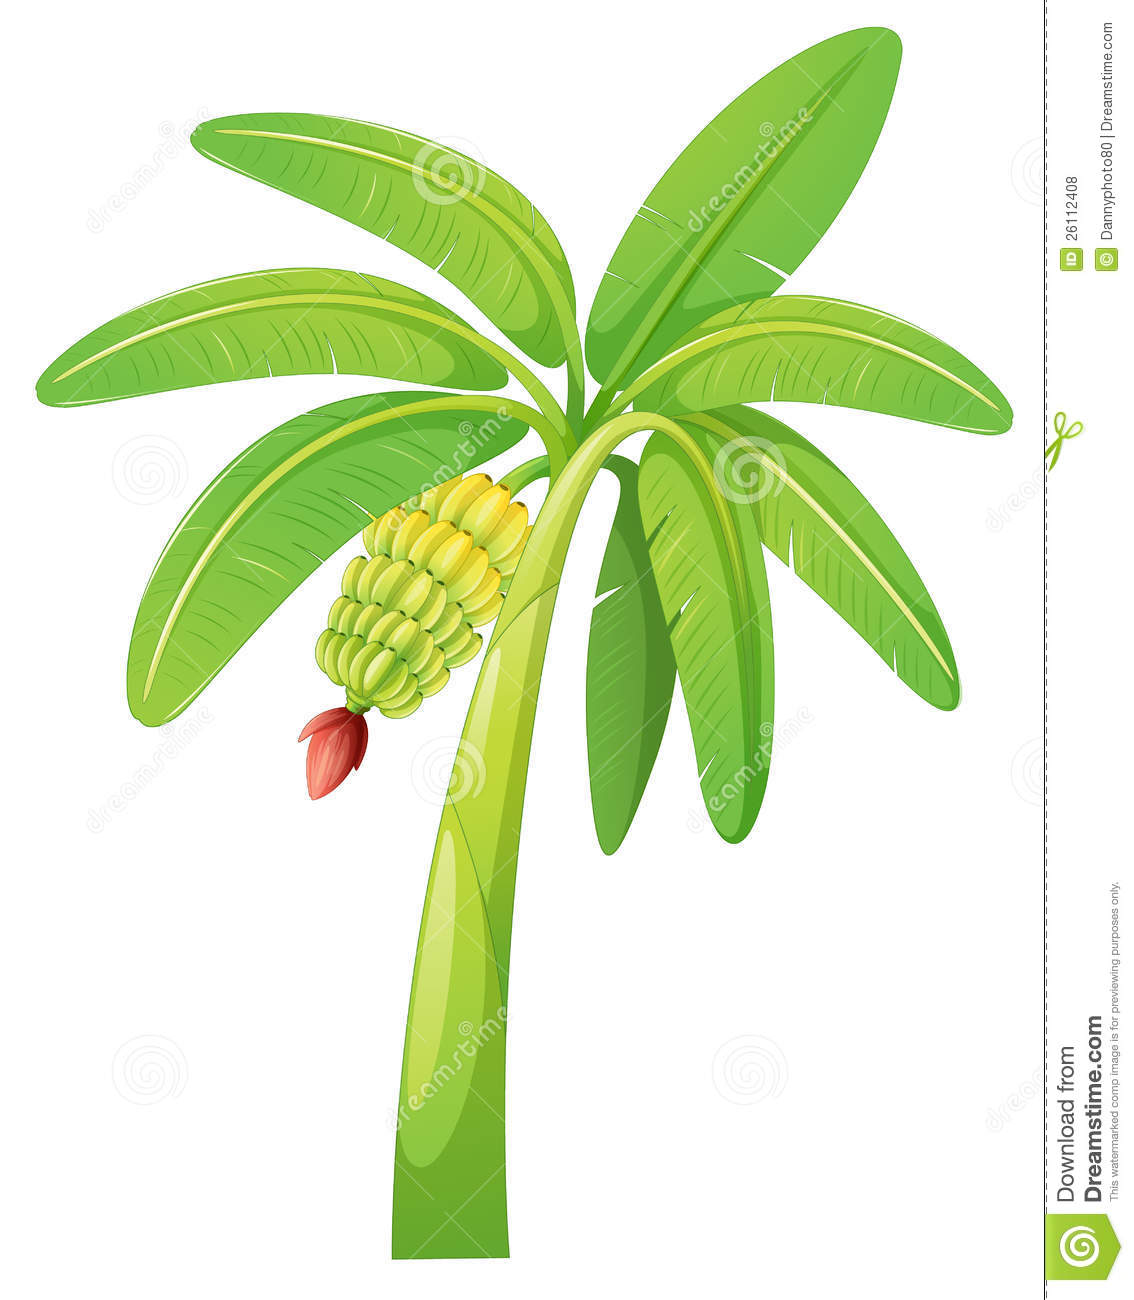 Banana Tree Royalty Free Stock Photos - Image: 26112408